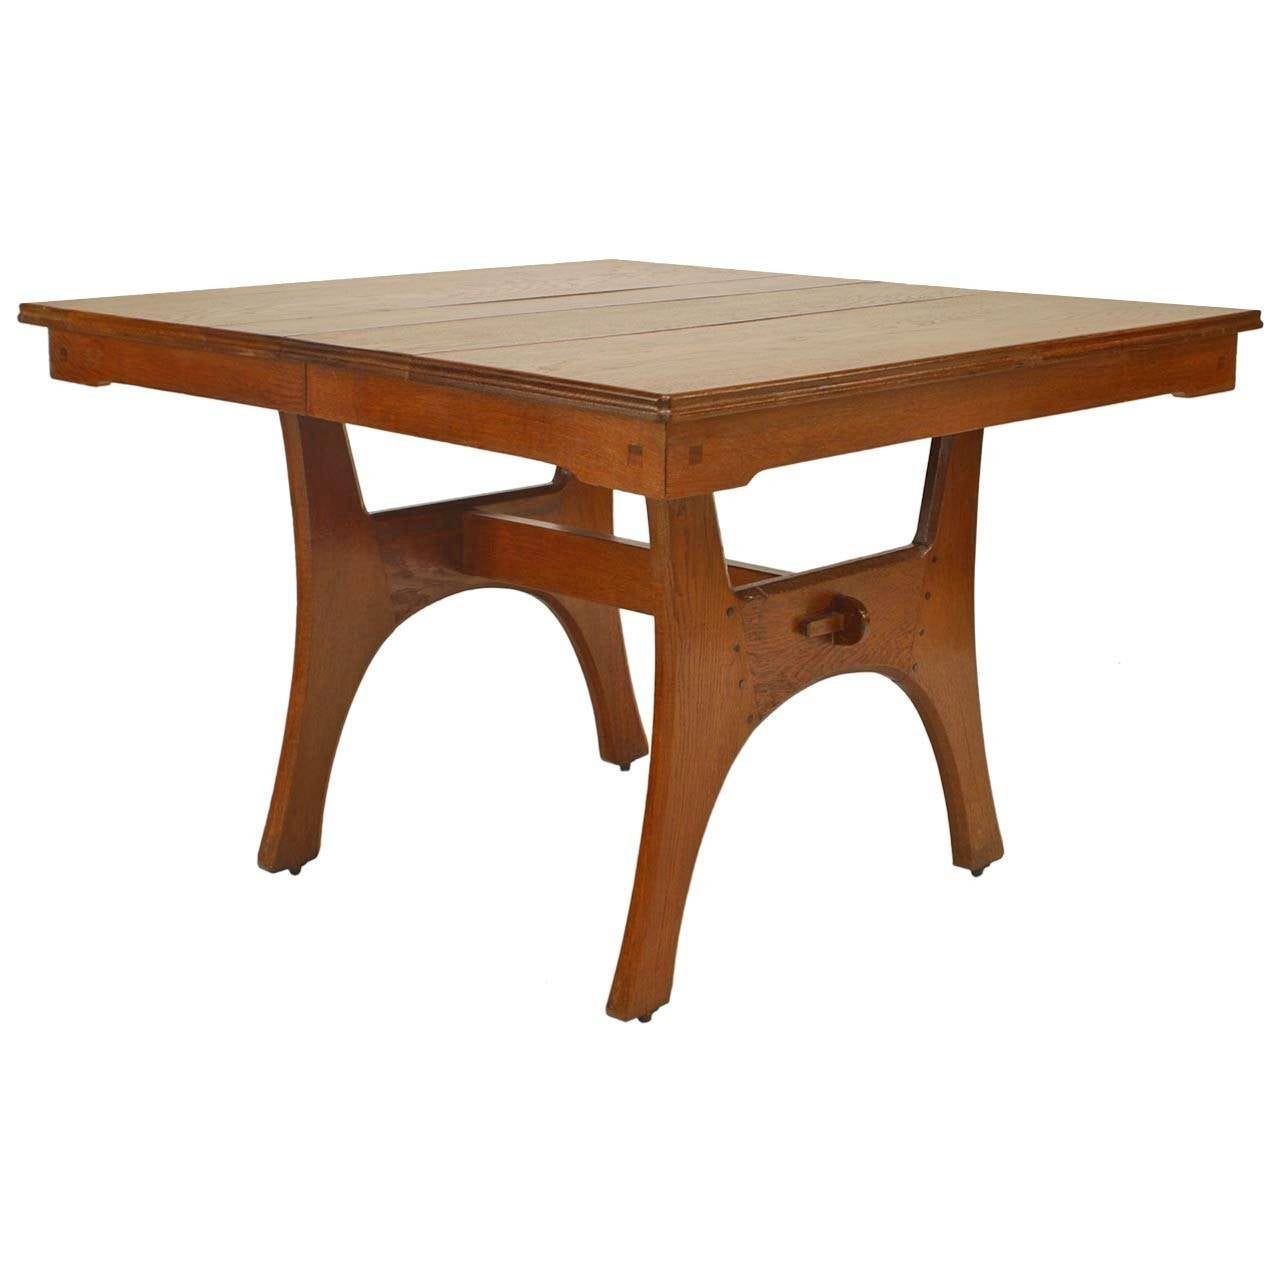 French Arts And Crafts Oak Dining Table With Extension At 1stdibs